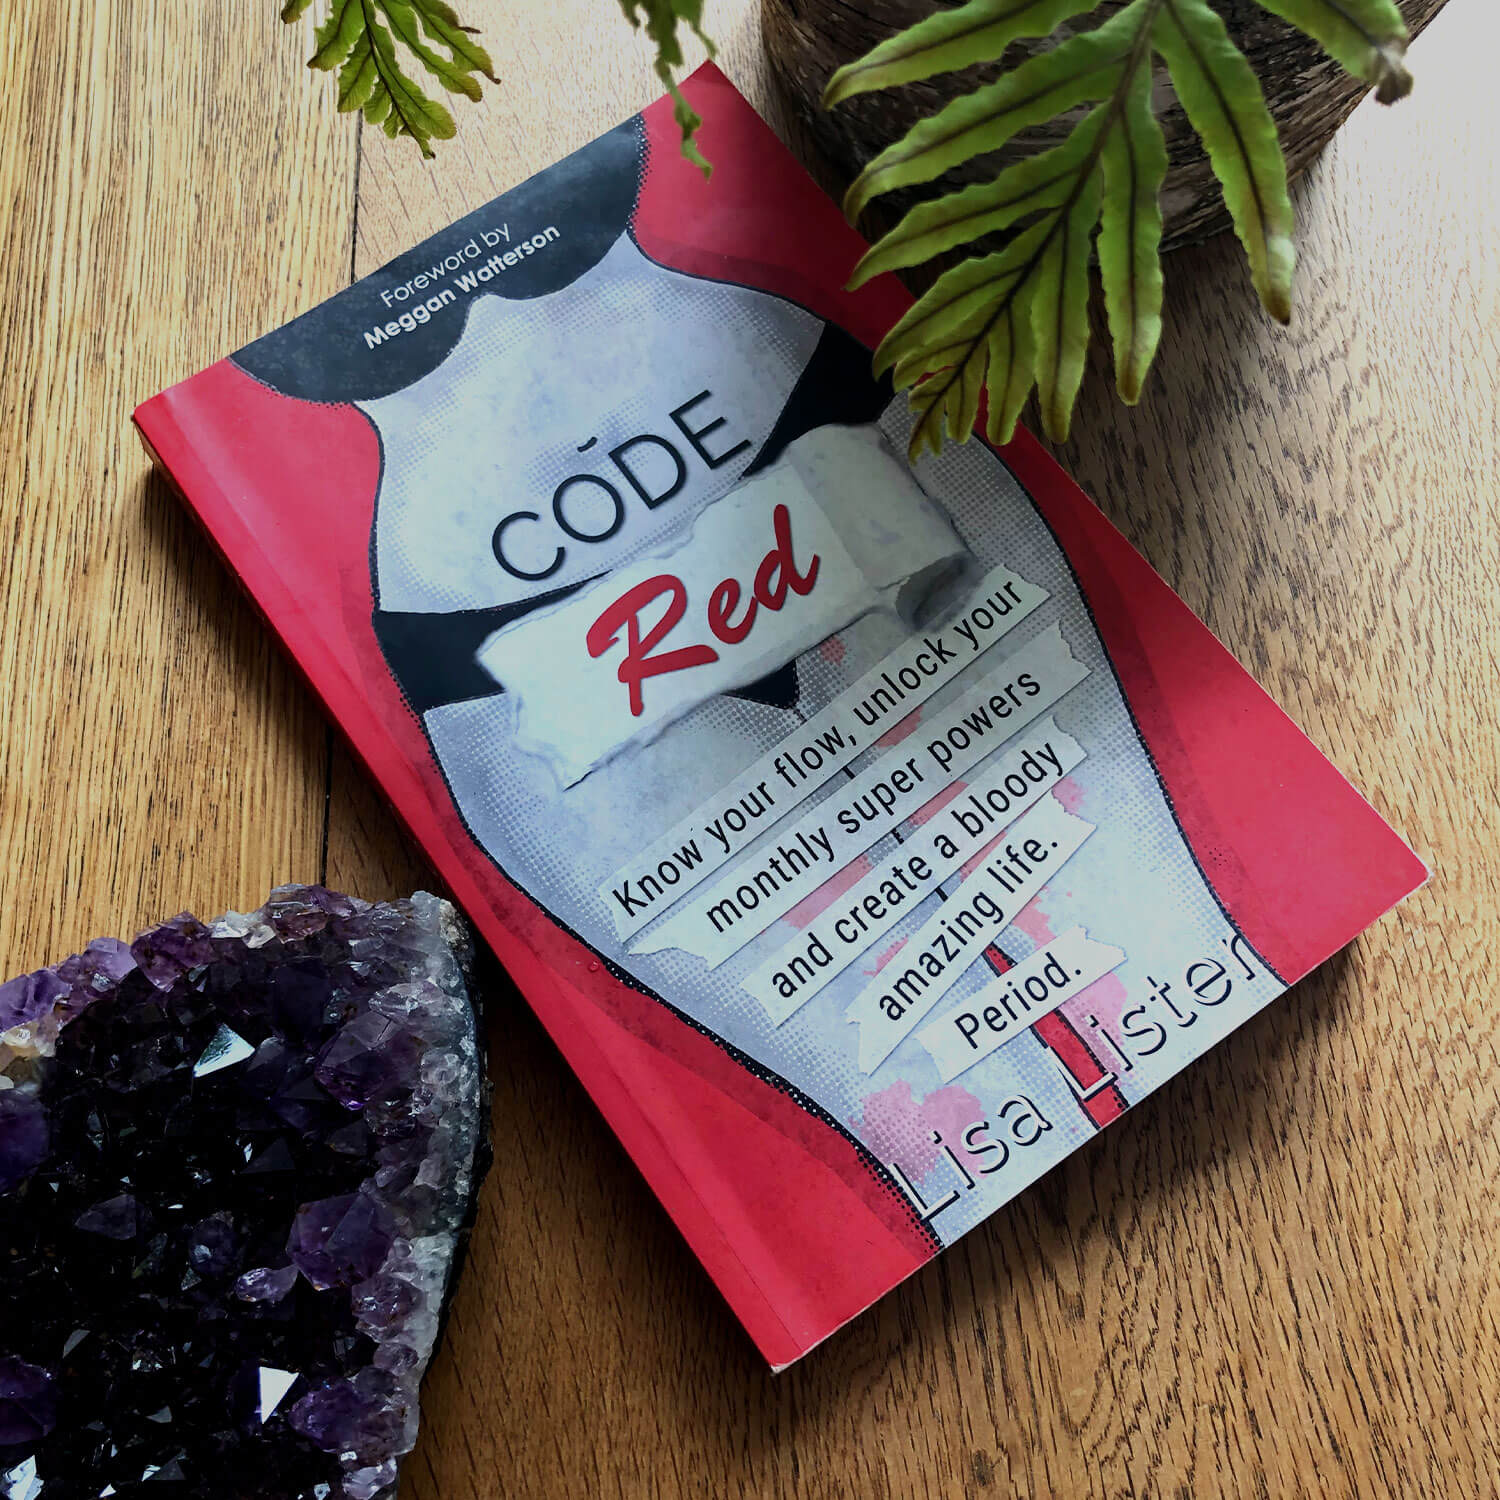 Code red book on wooden surface with amethyst geode and fern pot plant.